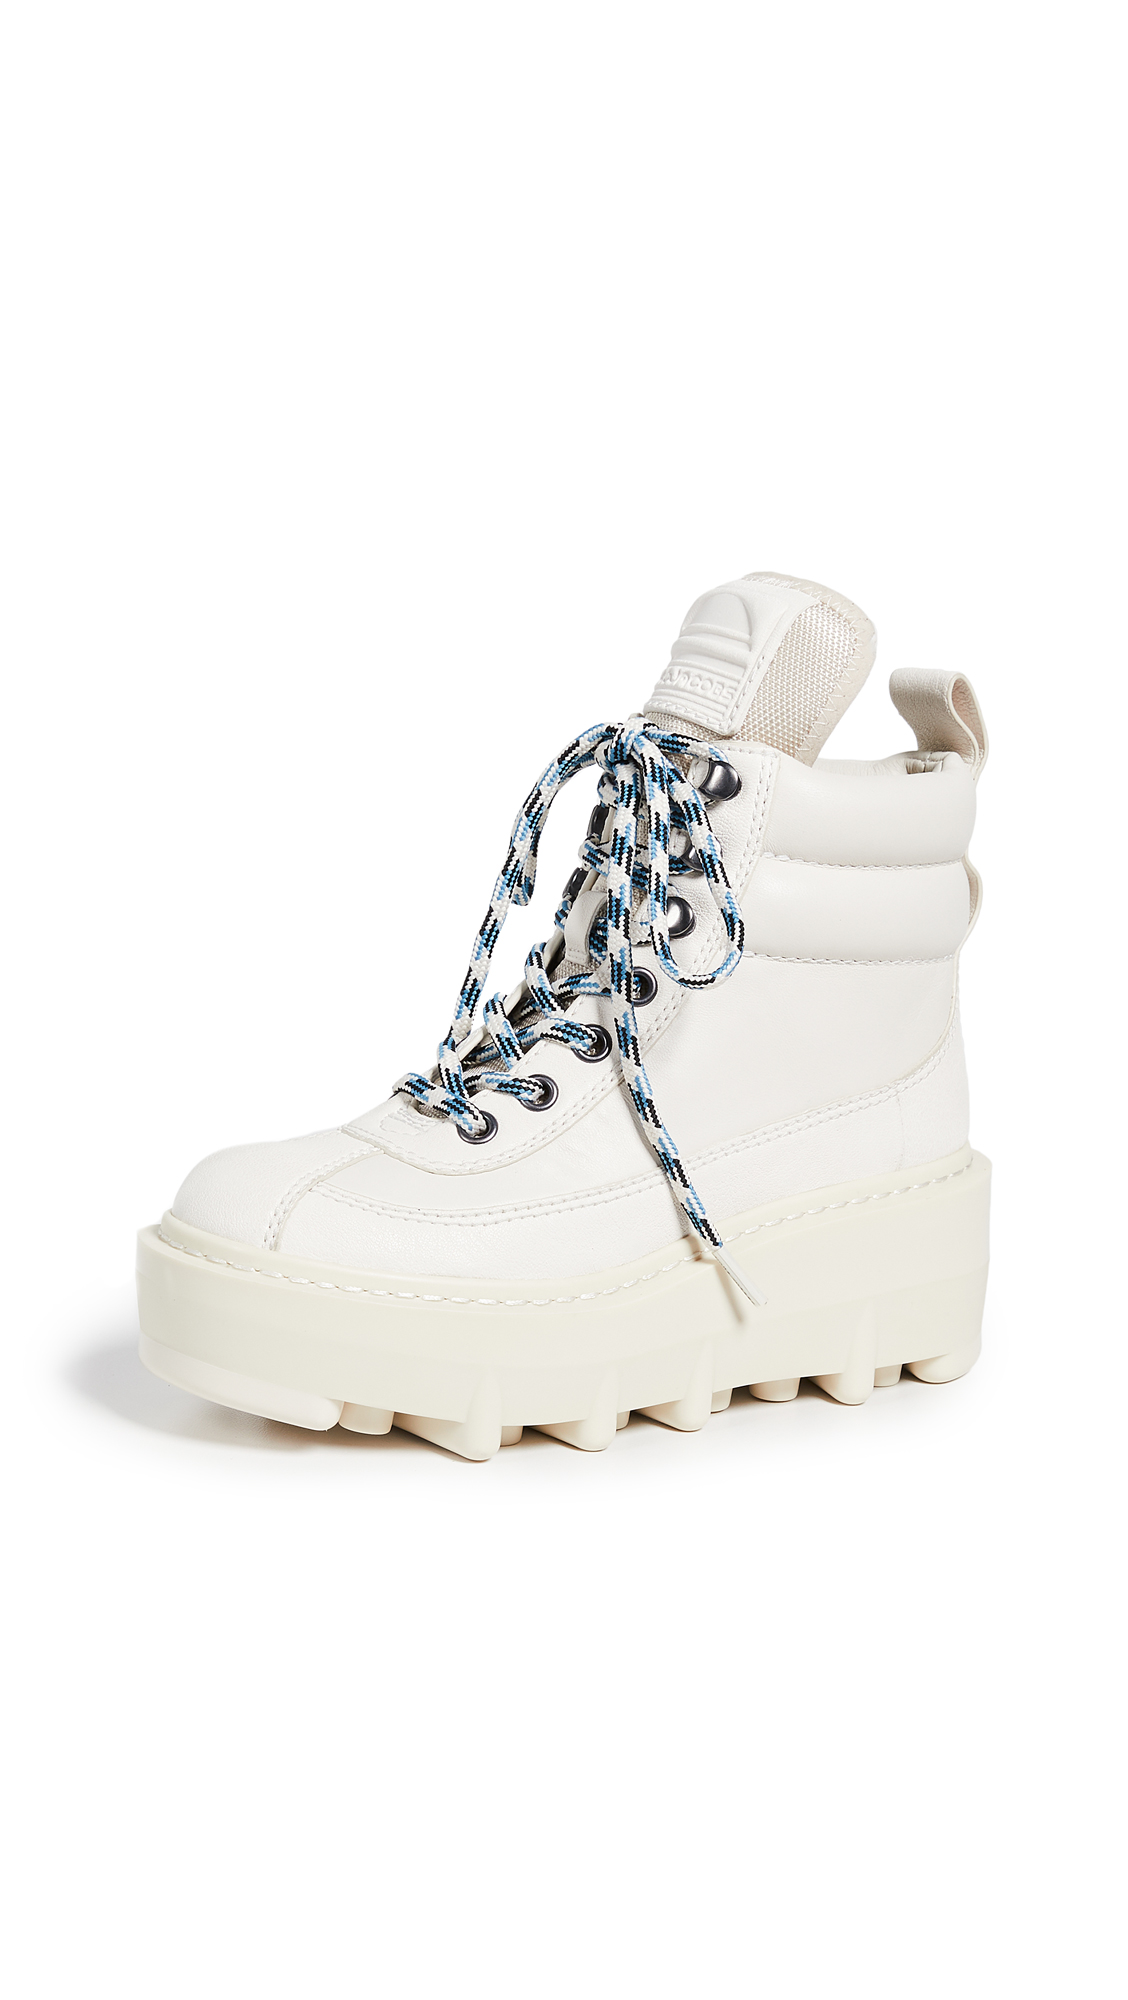 Marc Jacobs Shay Wedge Hiking Boots - White